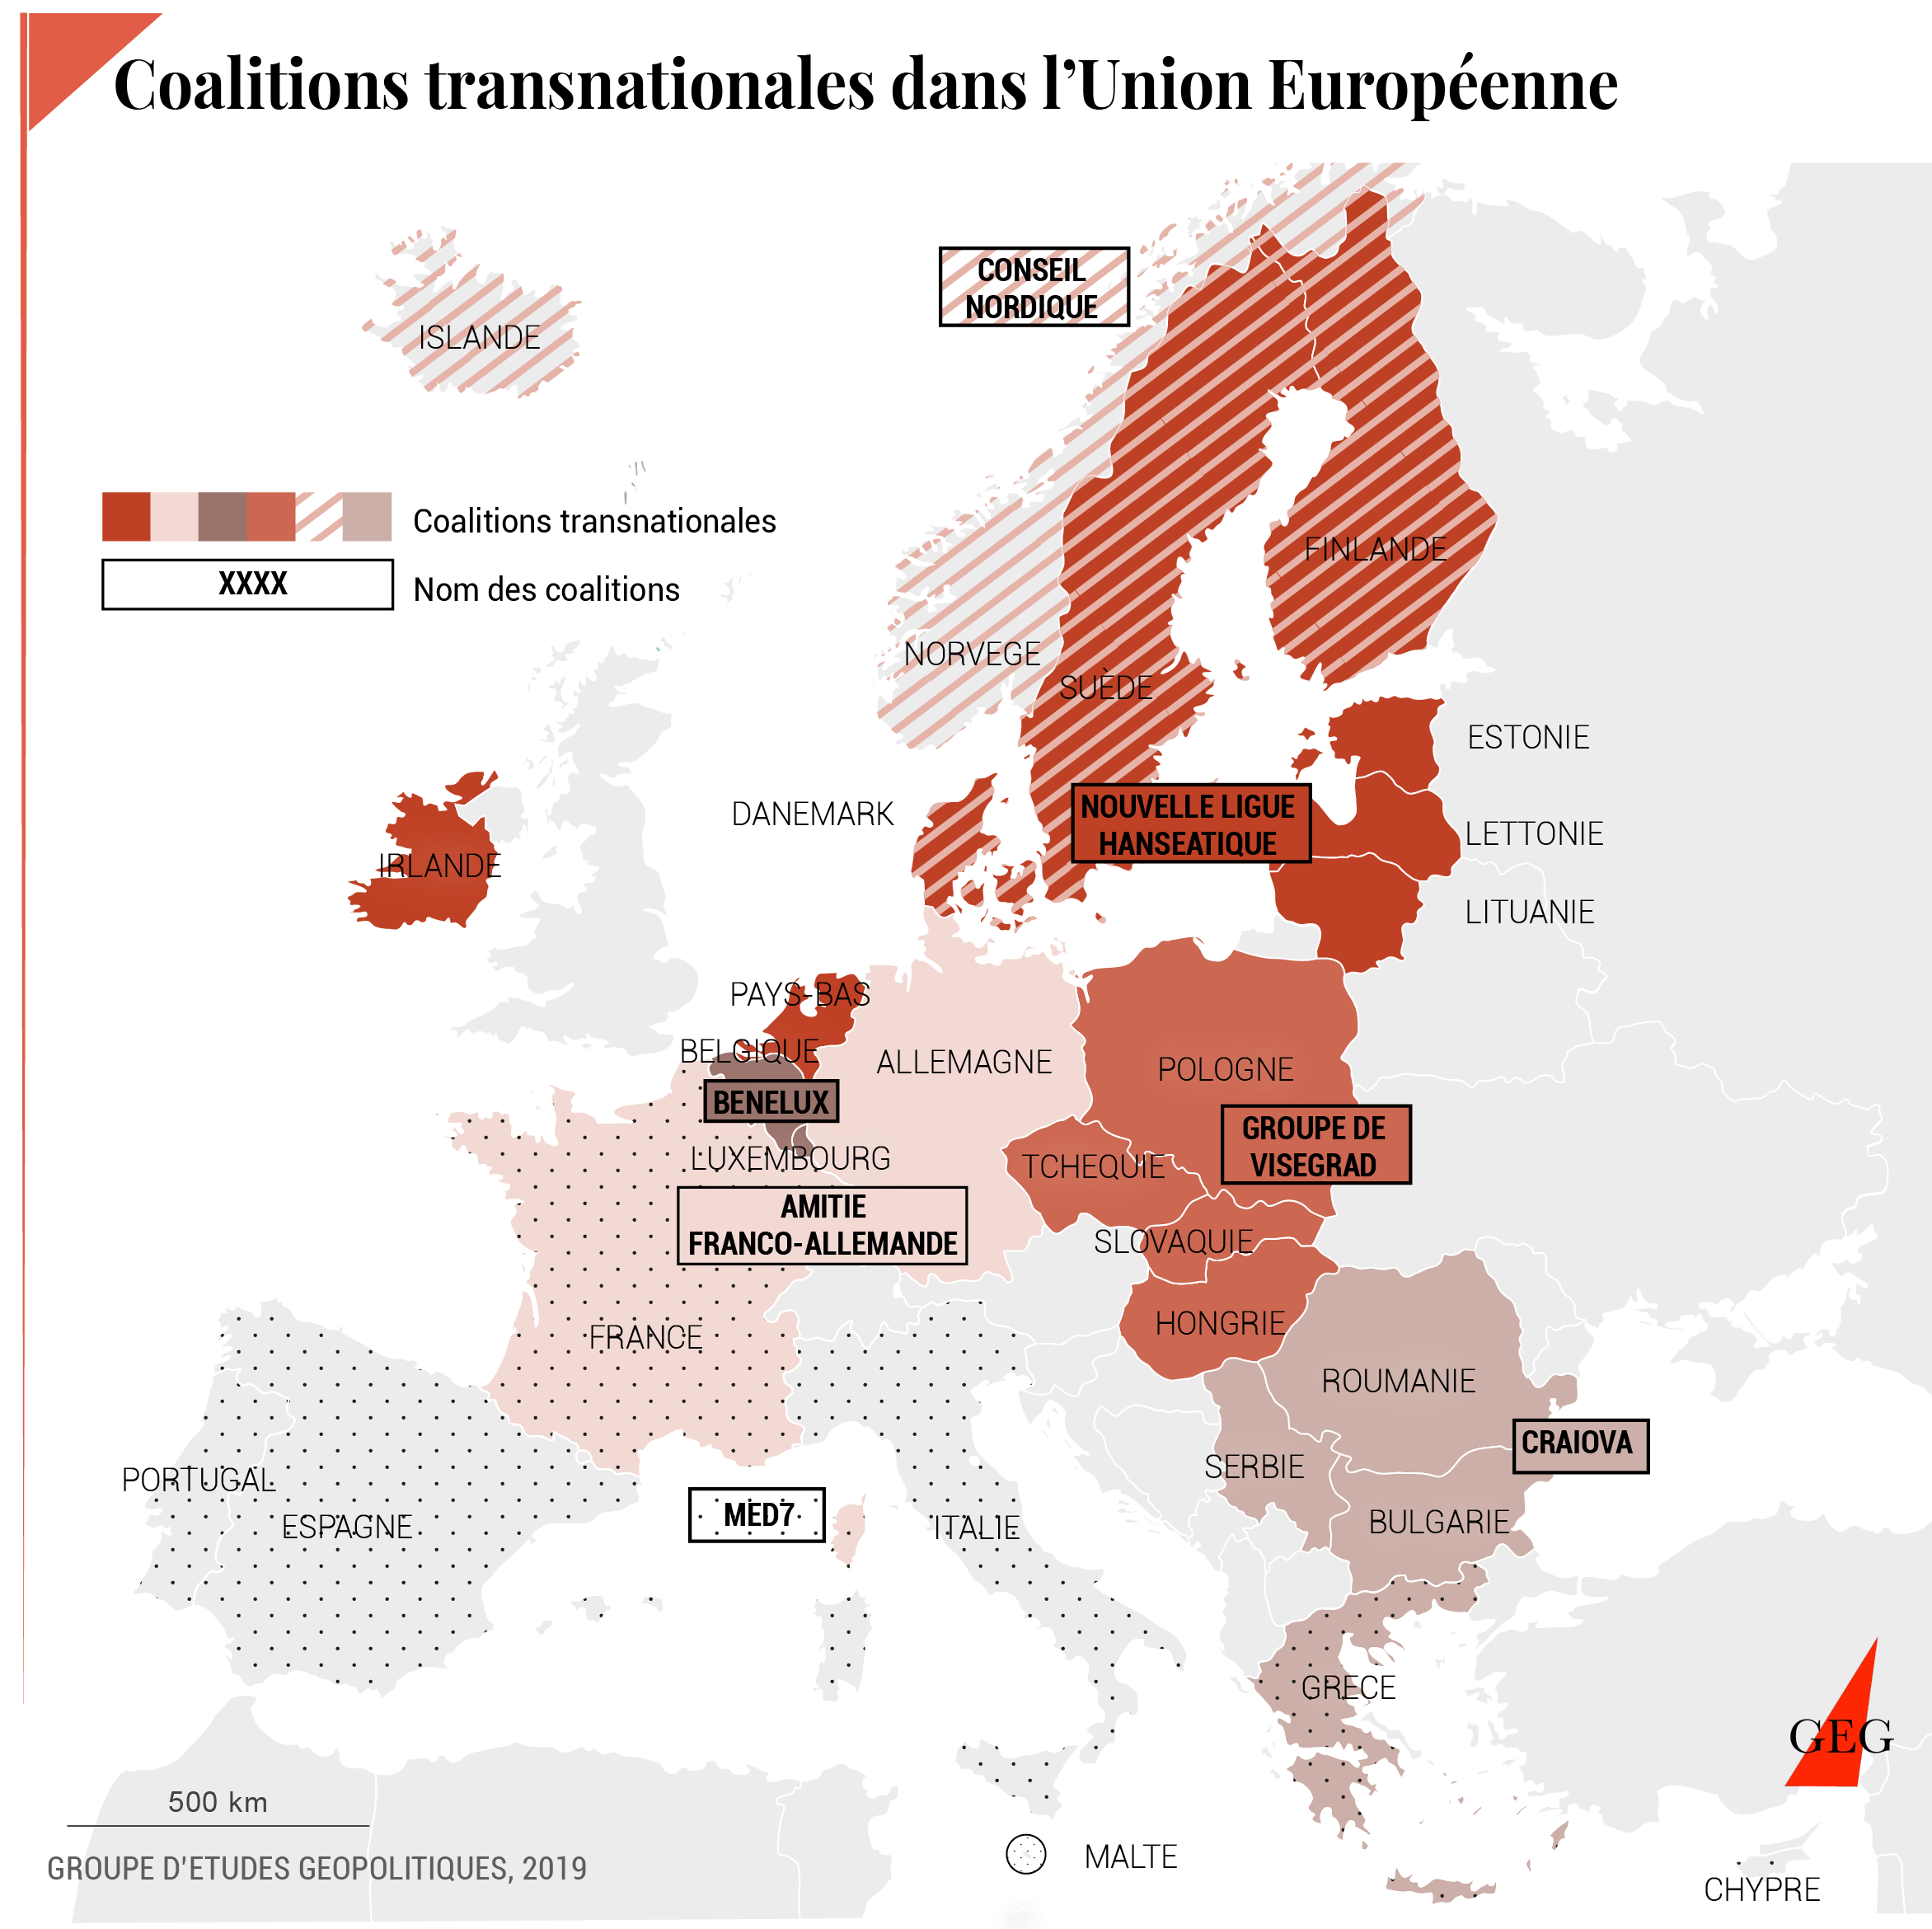 Map of transnational coalitions in the EU